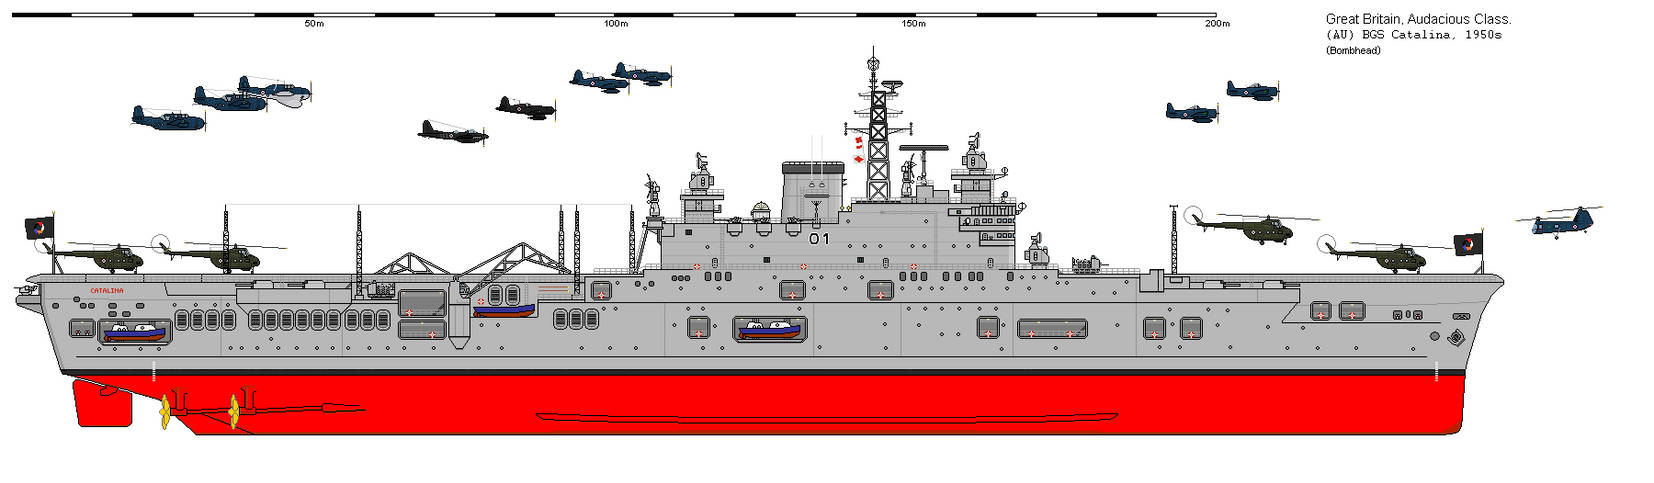 [AU-BG] Catalina-class aircraft carrier (1950s) by Sgt-Turbo